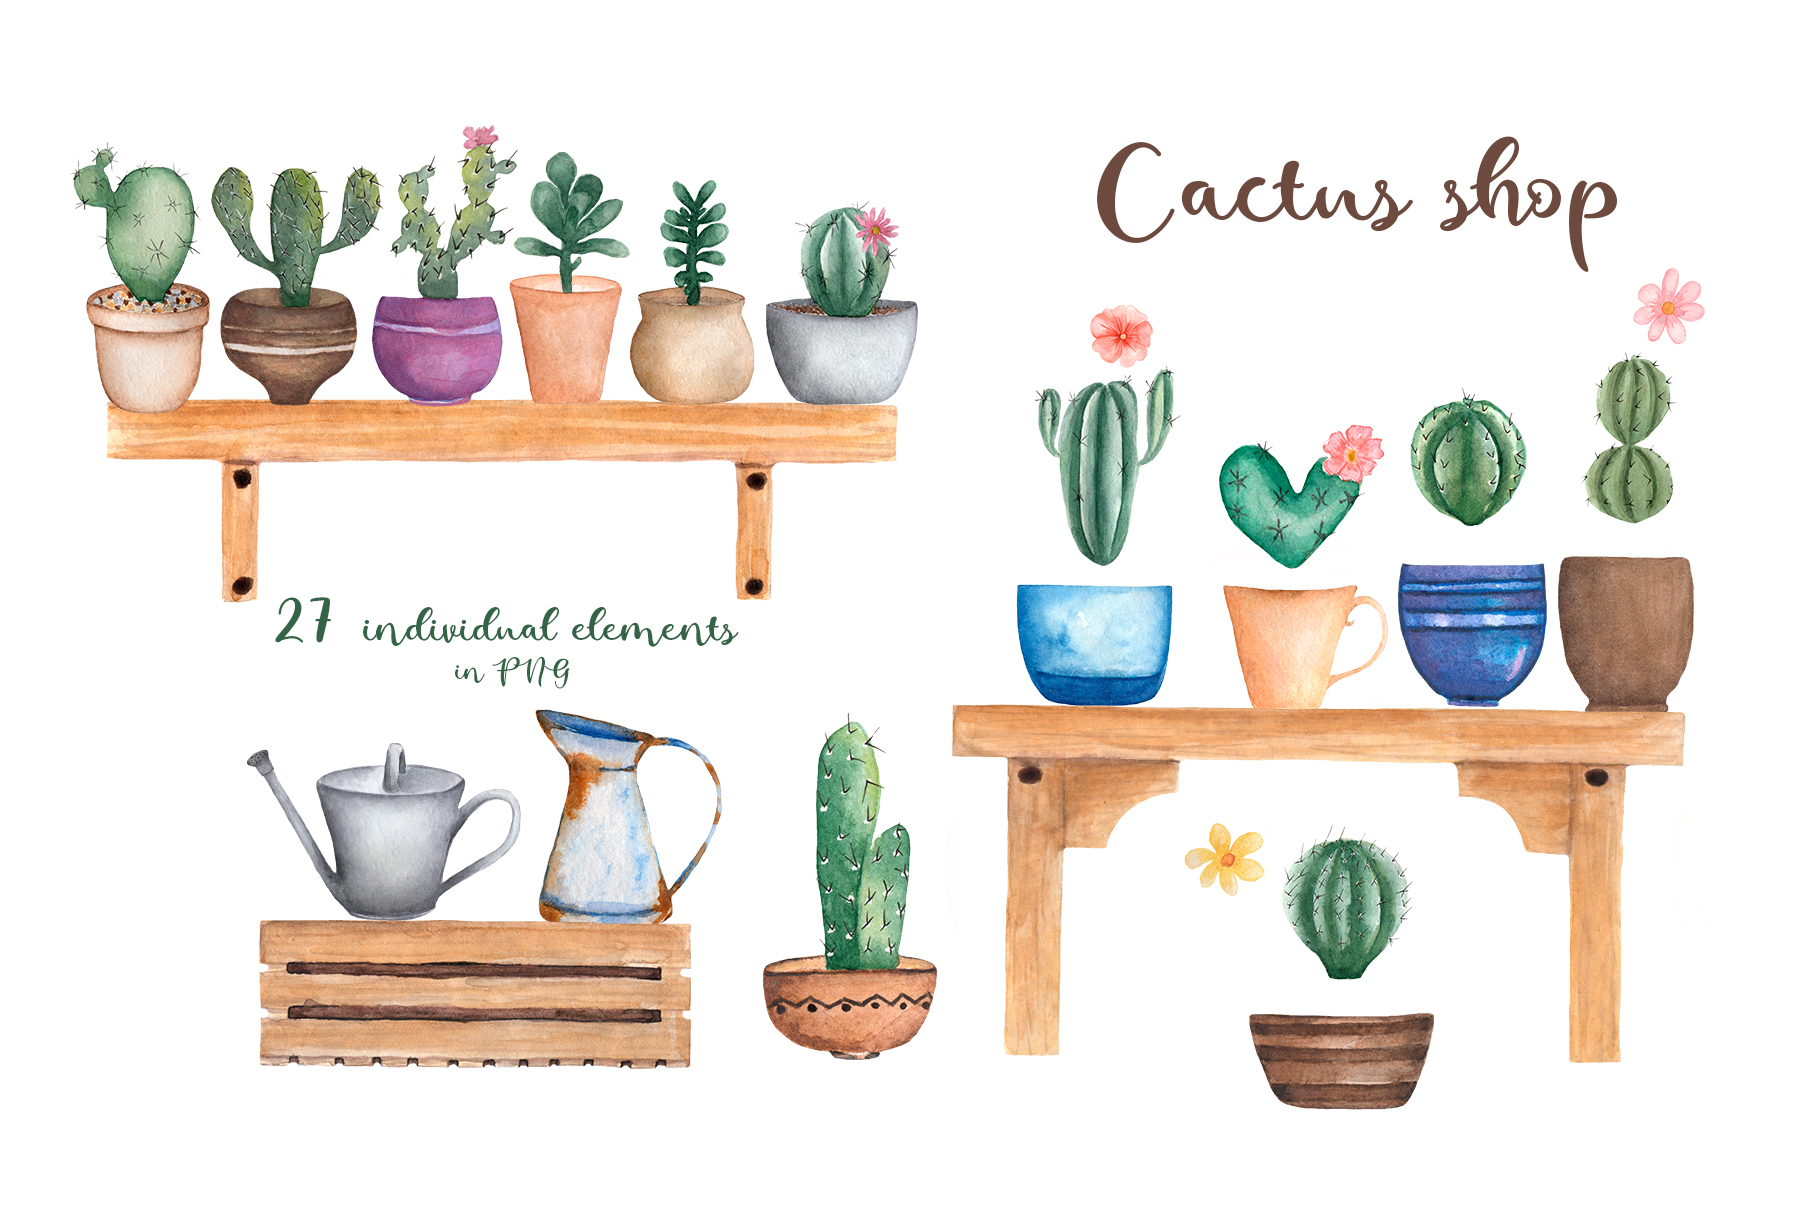 Watercolor Cactus Shop example image 2